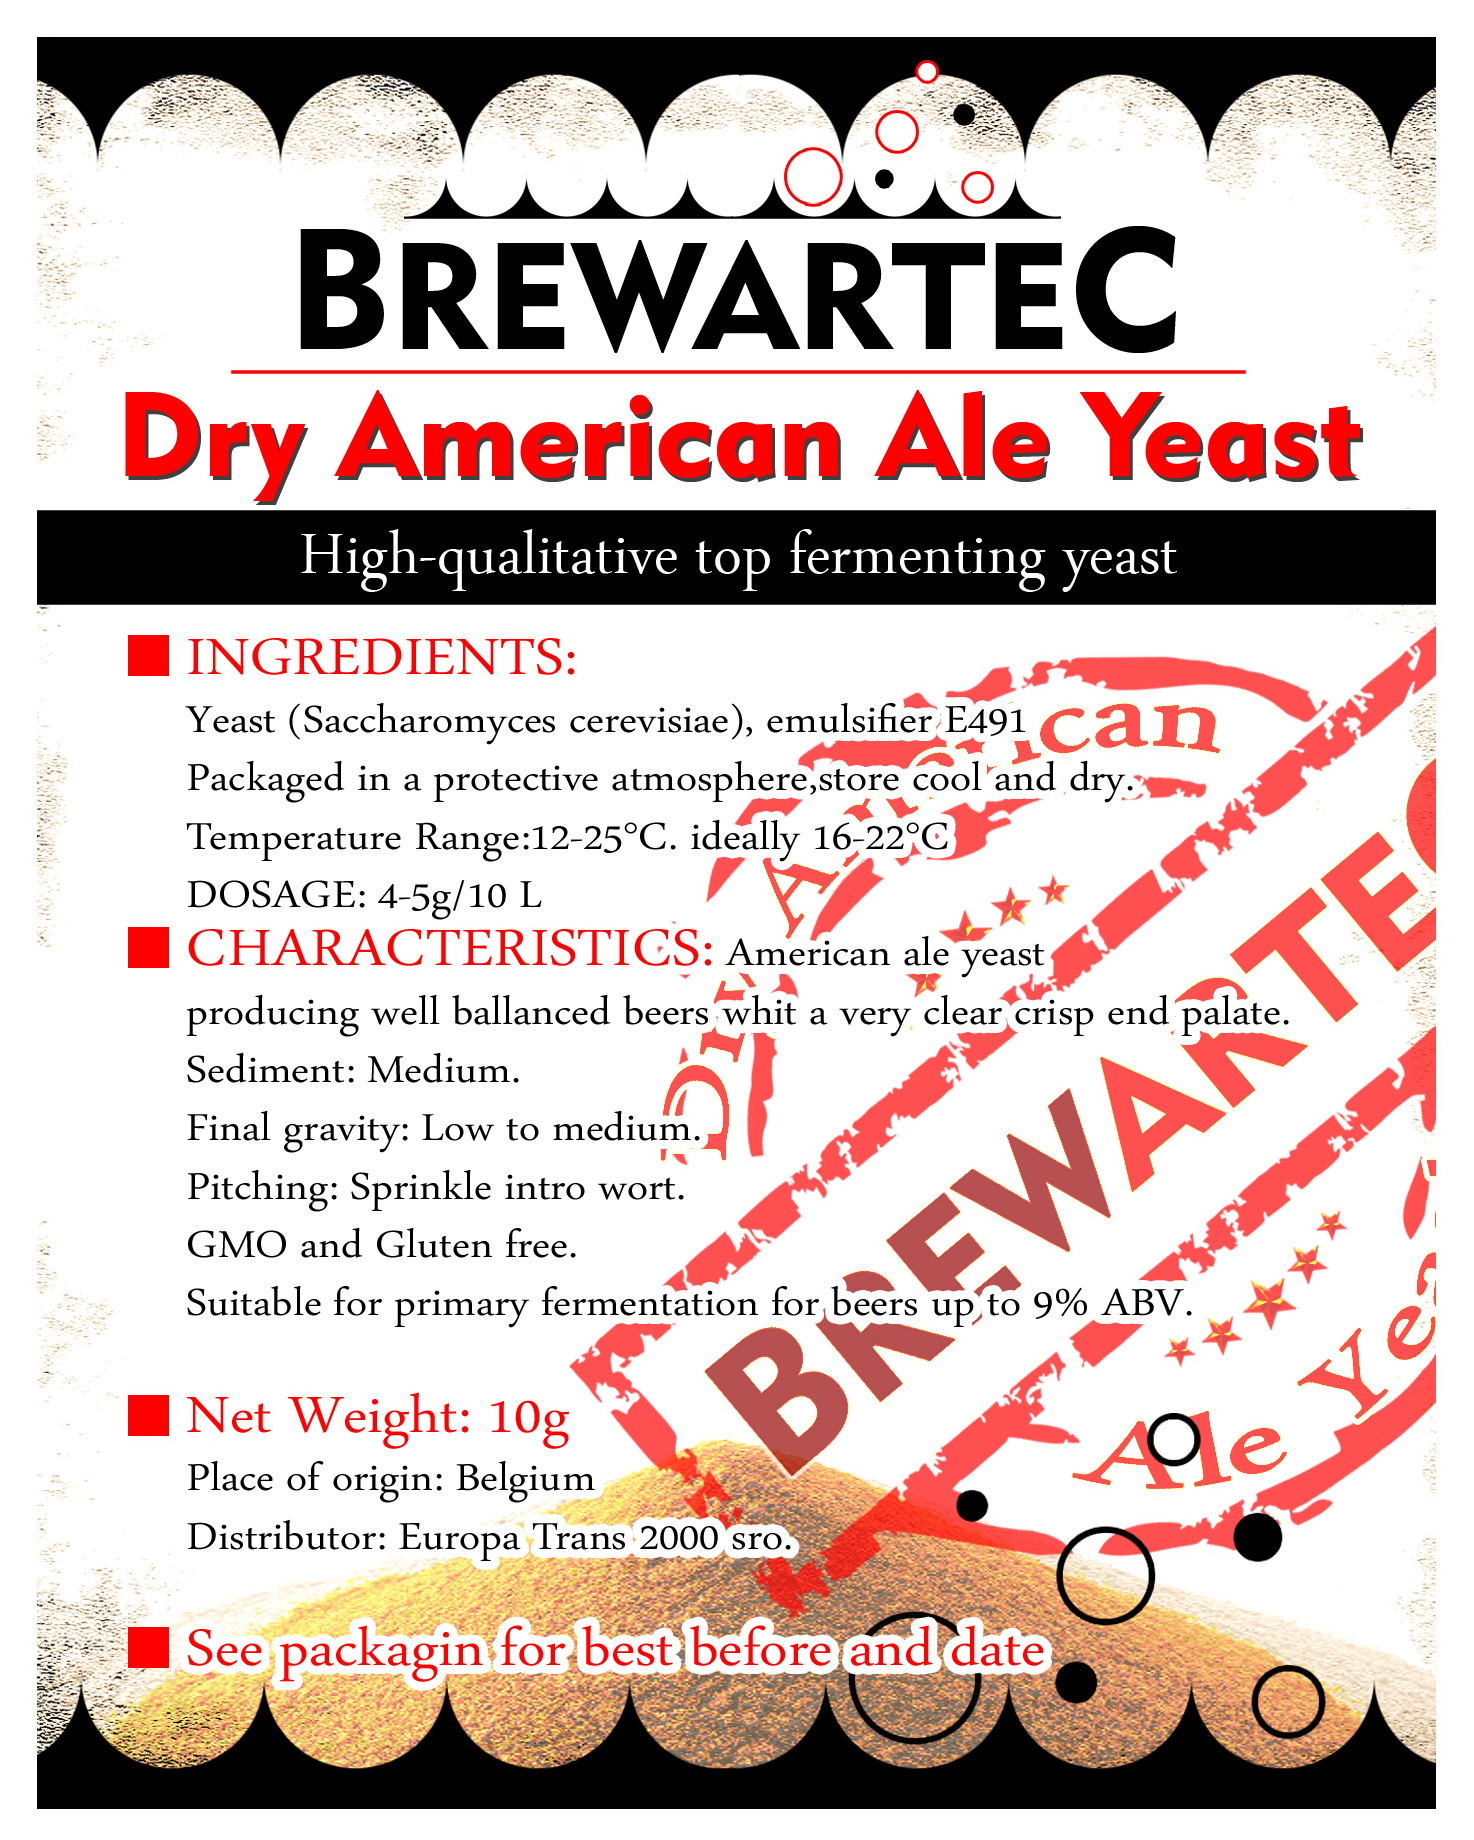 dried brewing yeast American Ale 10 gr (1094)